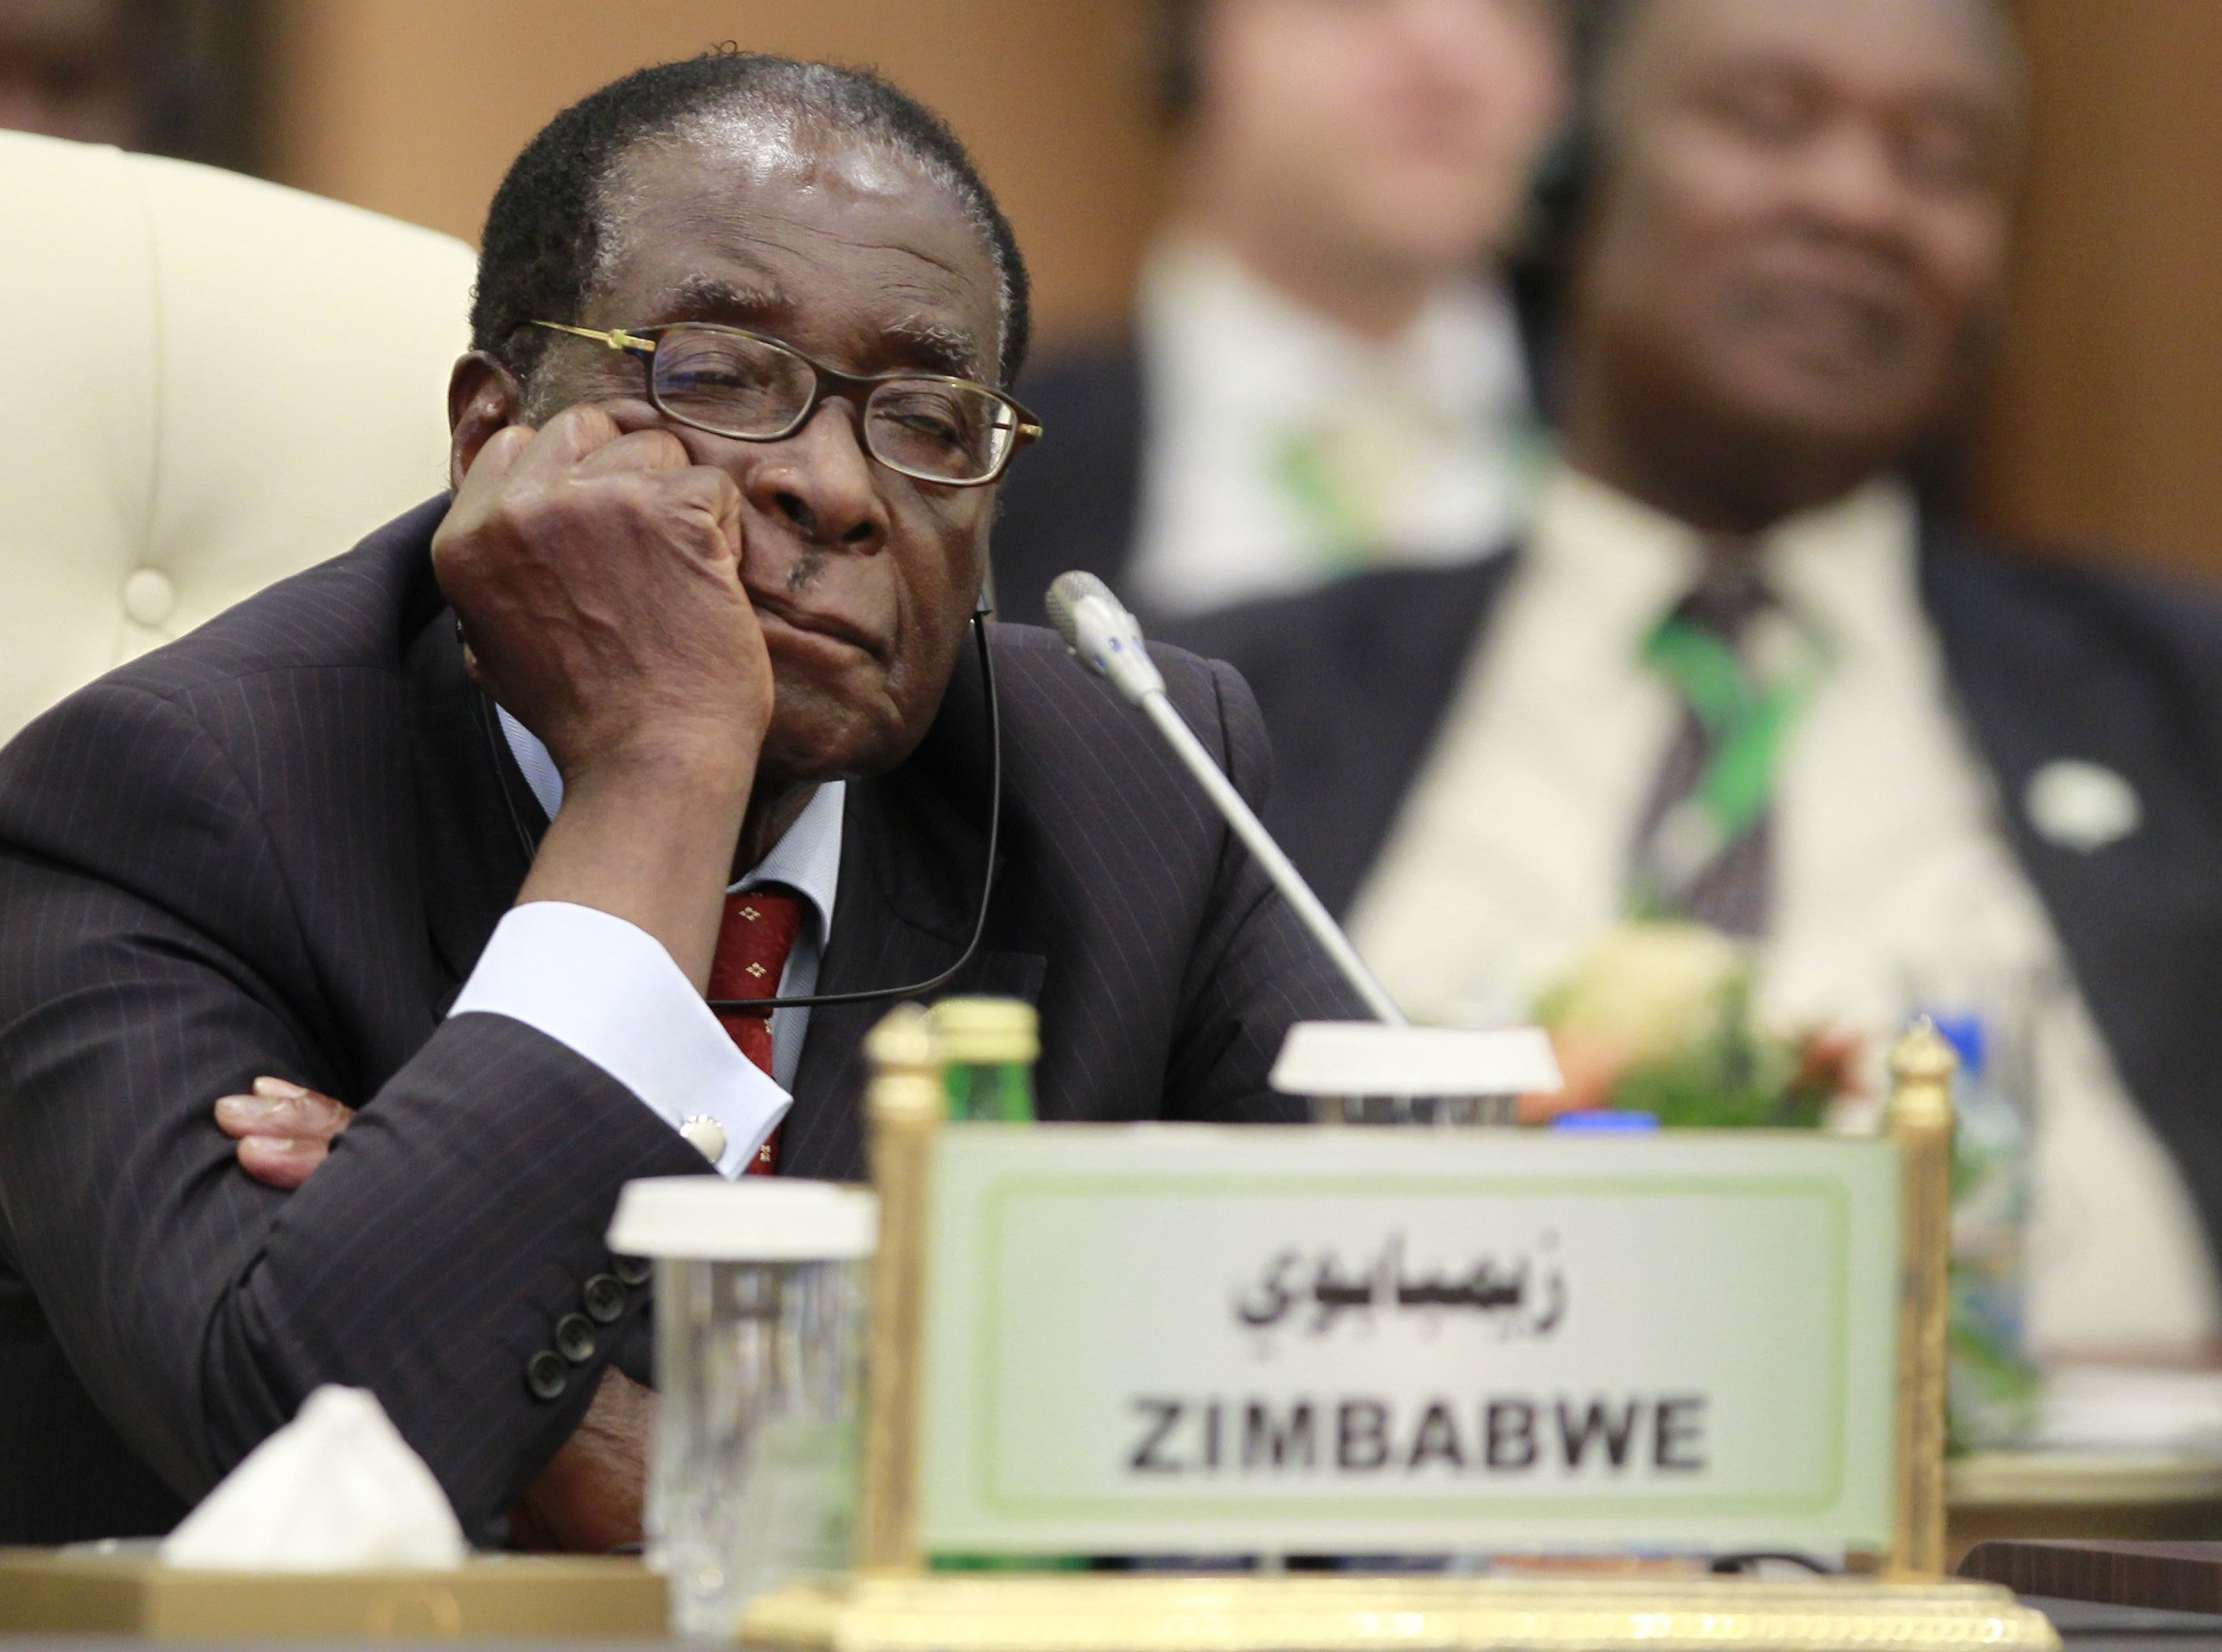 Mugabe sleeping